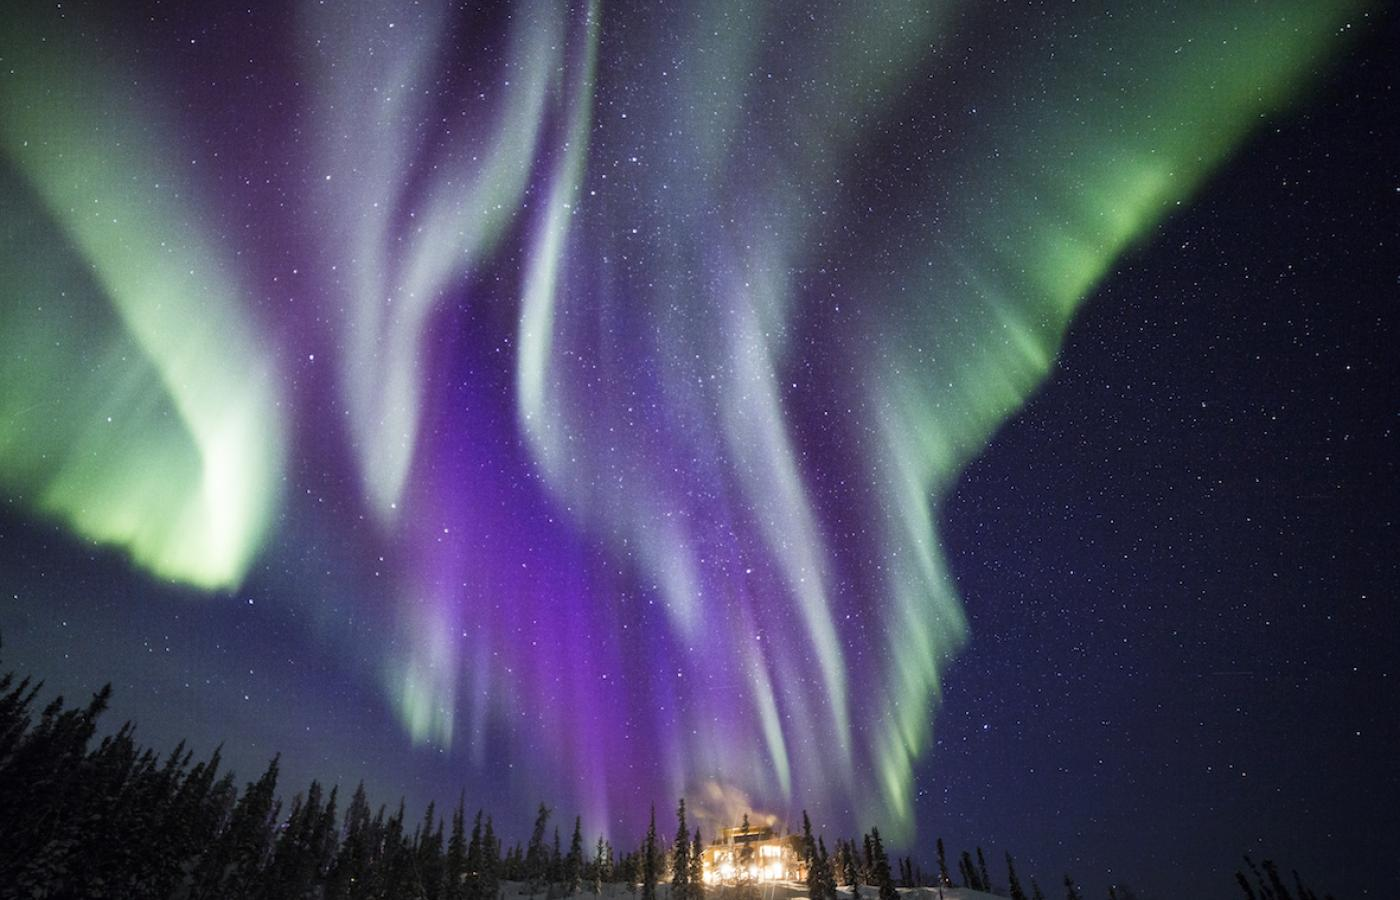 Purple aurora are less common than green, but still quite a regular sight above Canada's Northwest Territories